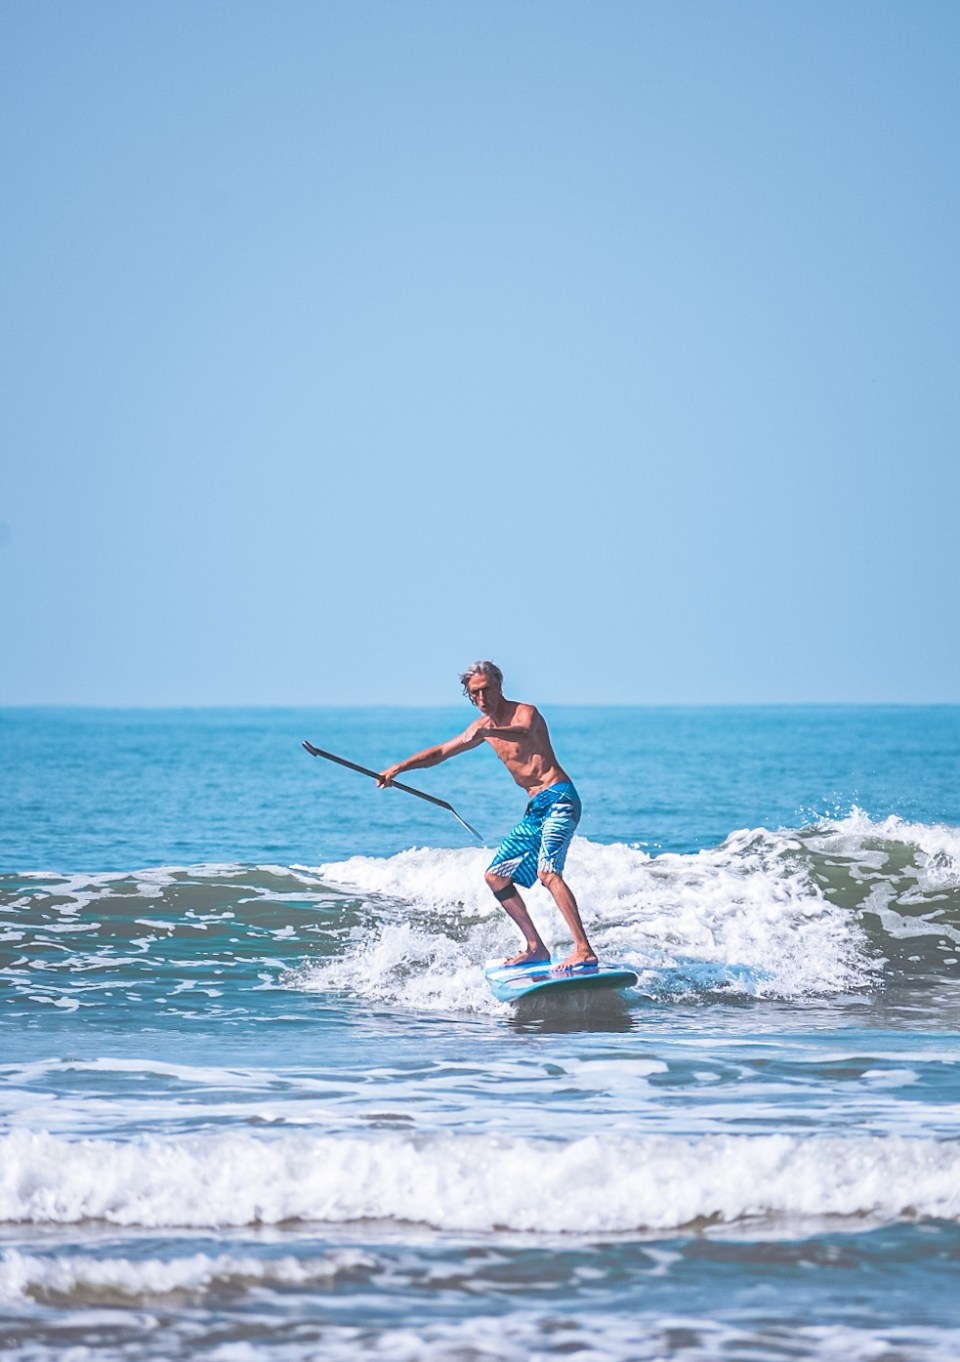 Surfing in Goa would be a new water sport experience